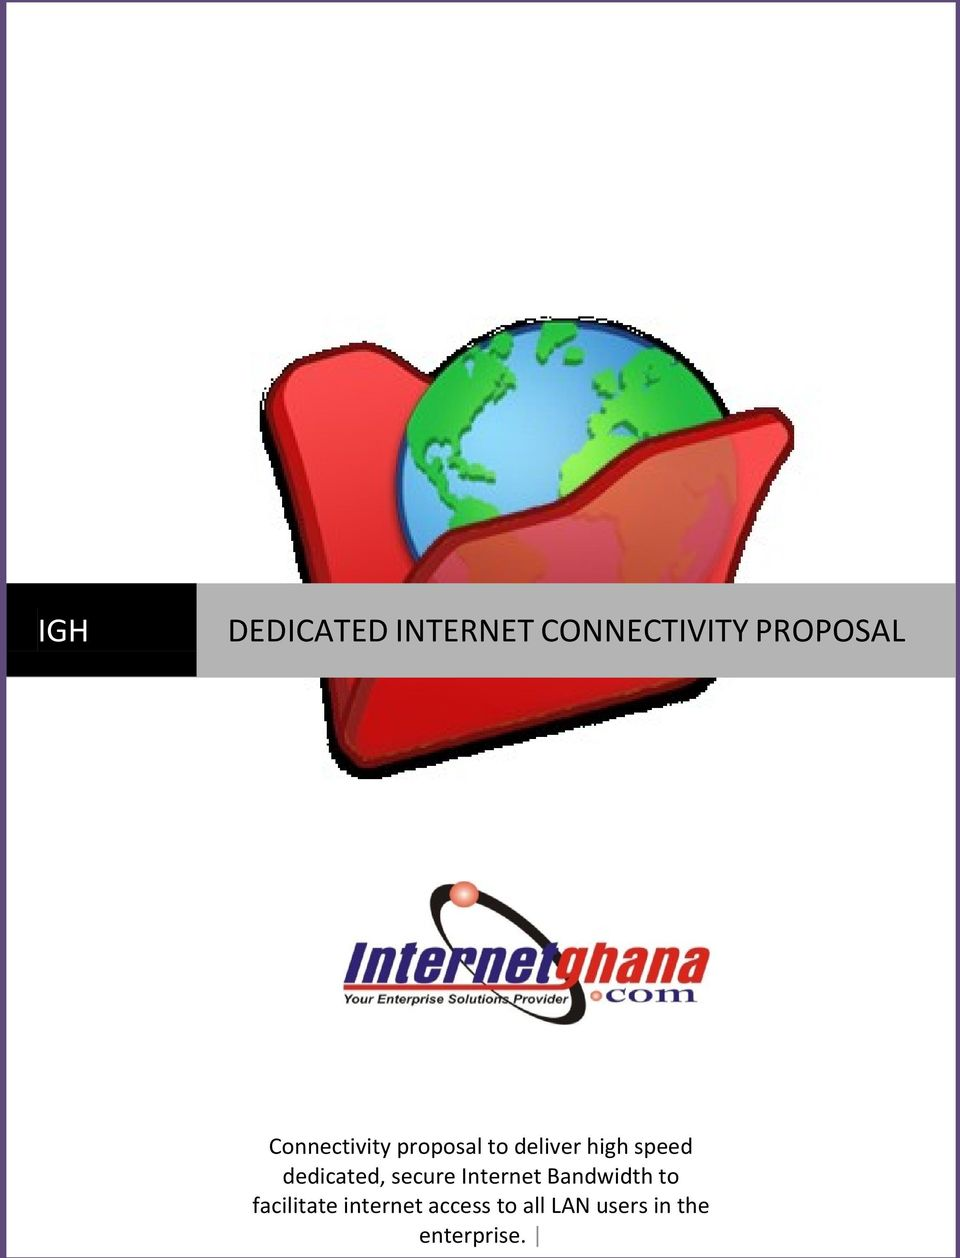 dedicated, secure Internet Bandwidth to